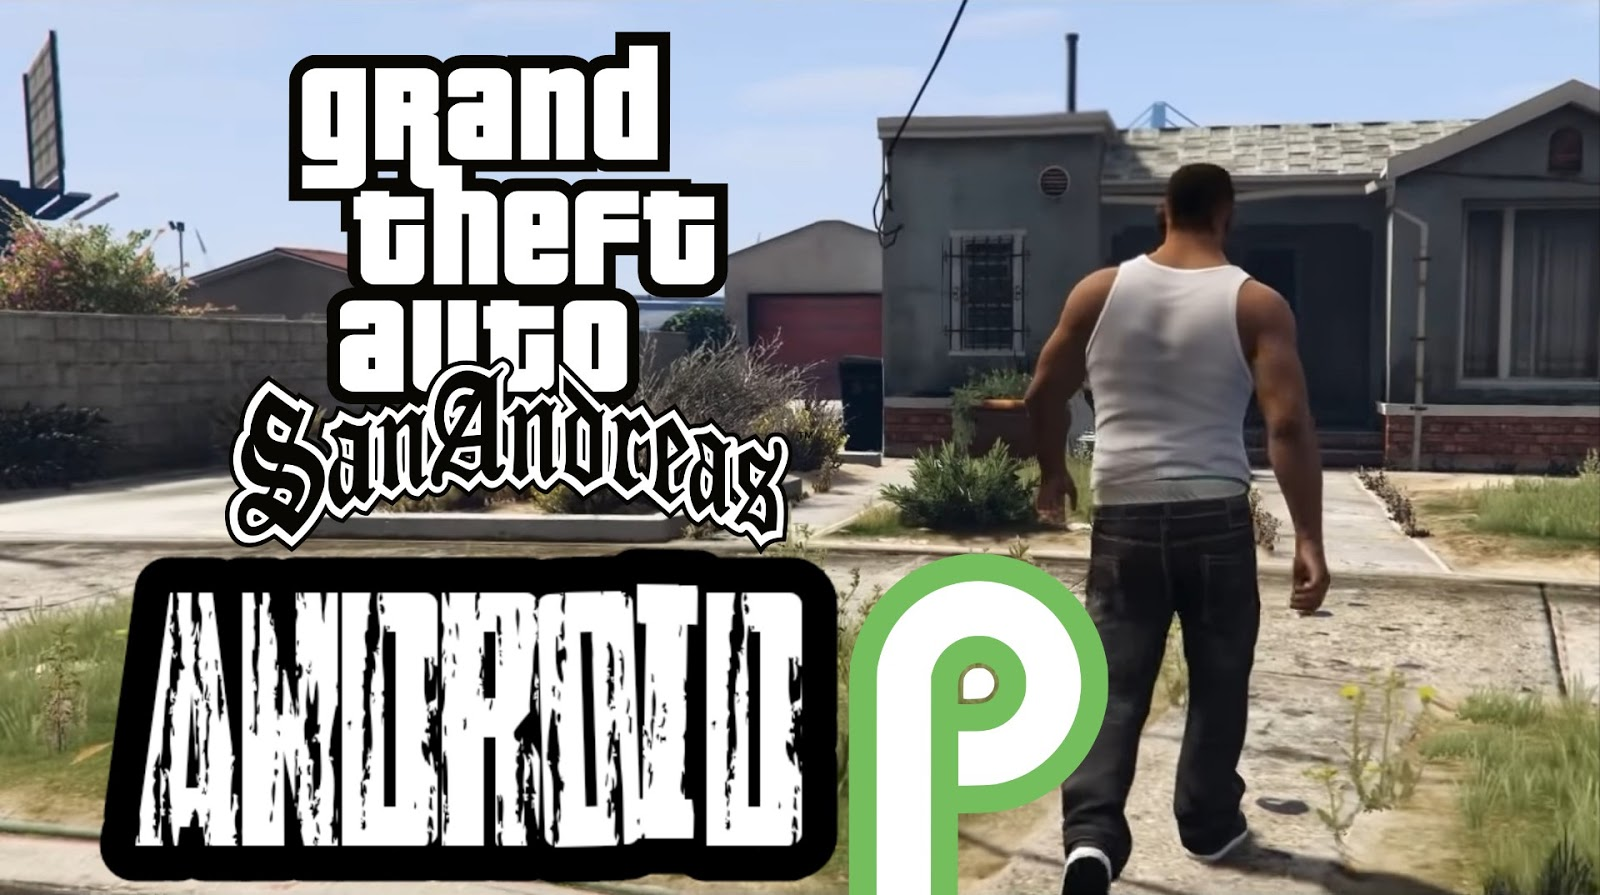 500 MB] Download Gta San Andreas Lite For Android Pie 9 0